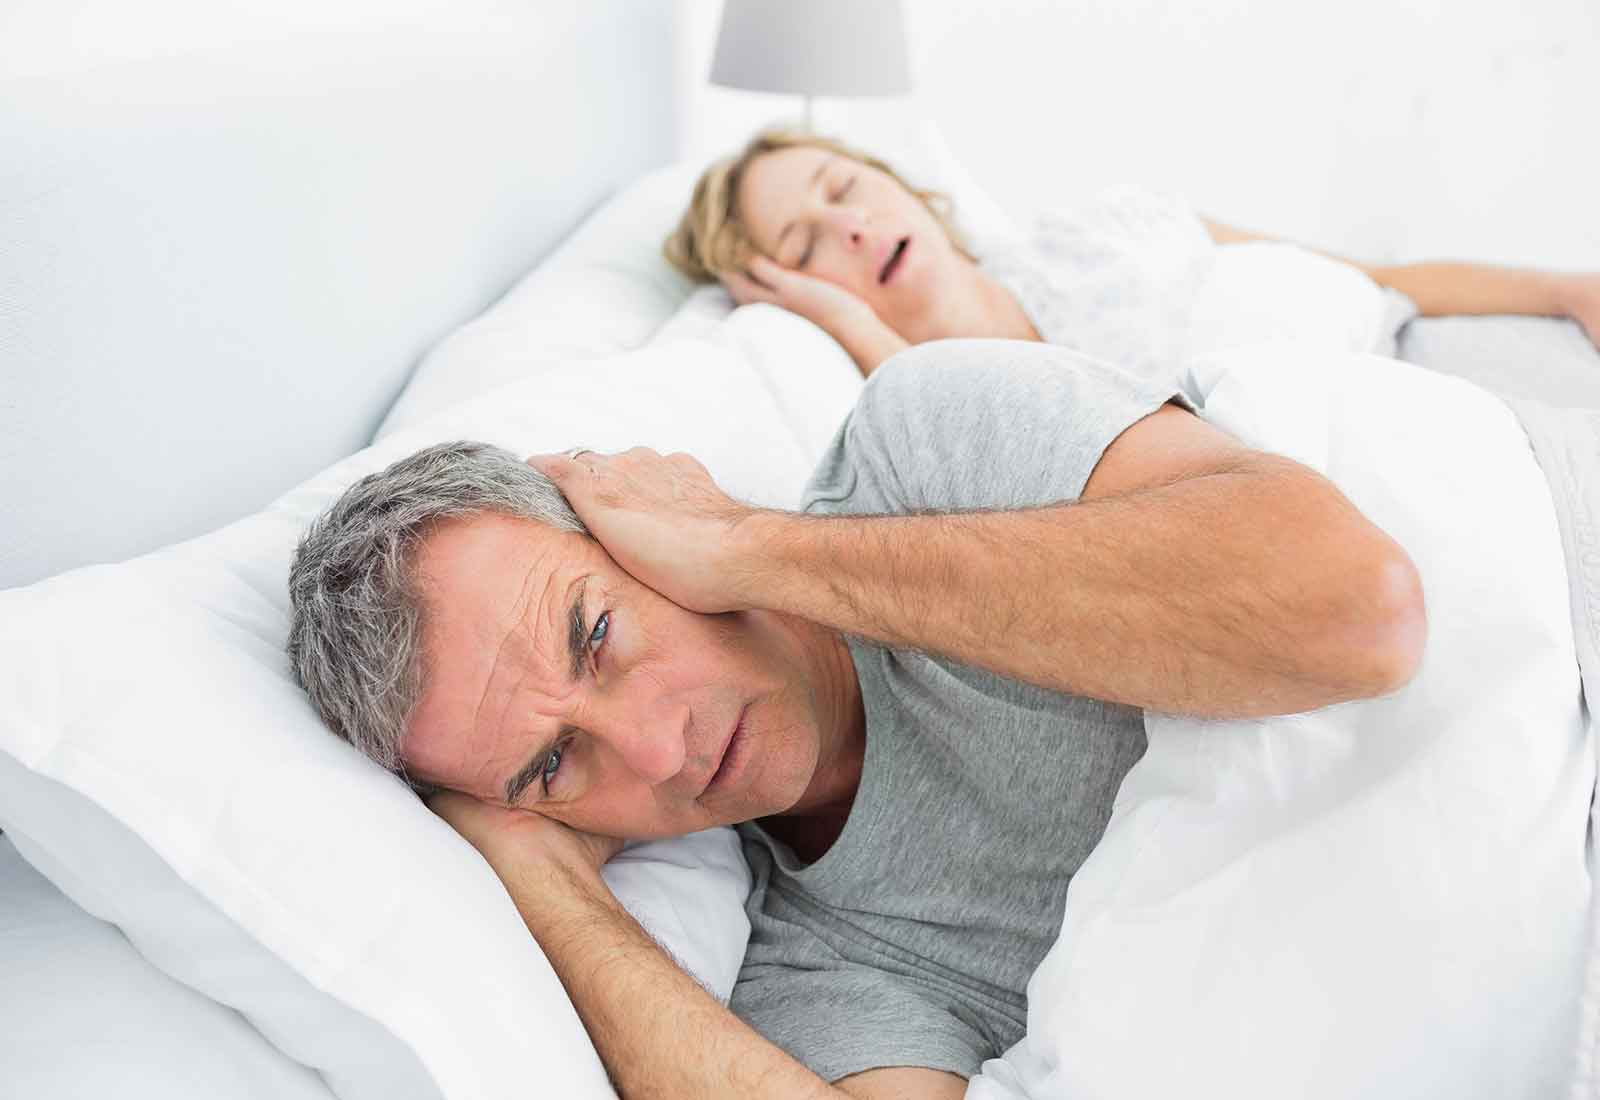 Study Investigates Why Some Snorers Get Off Lightly